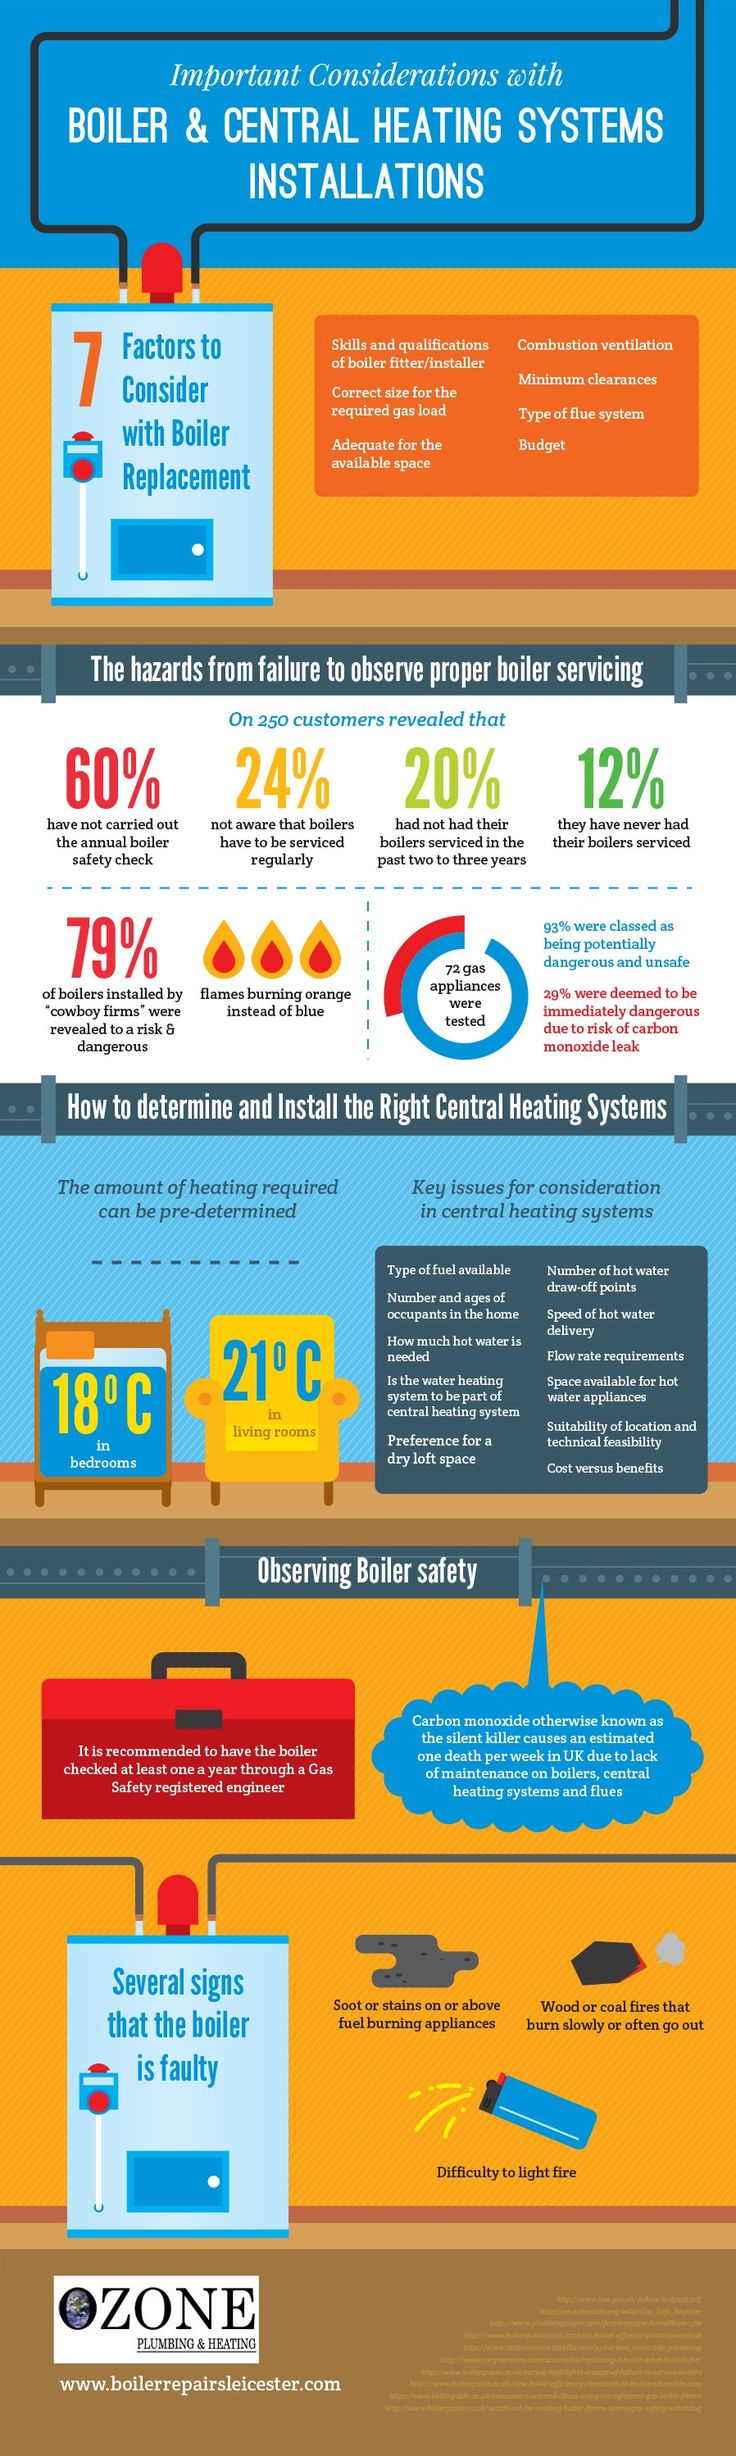 Important Considerations with Boiler & Central Heating Systems  Installations [INFOGRAPHIC]